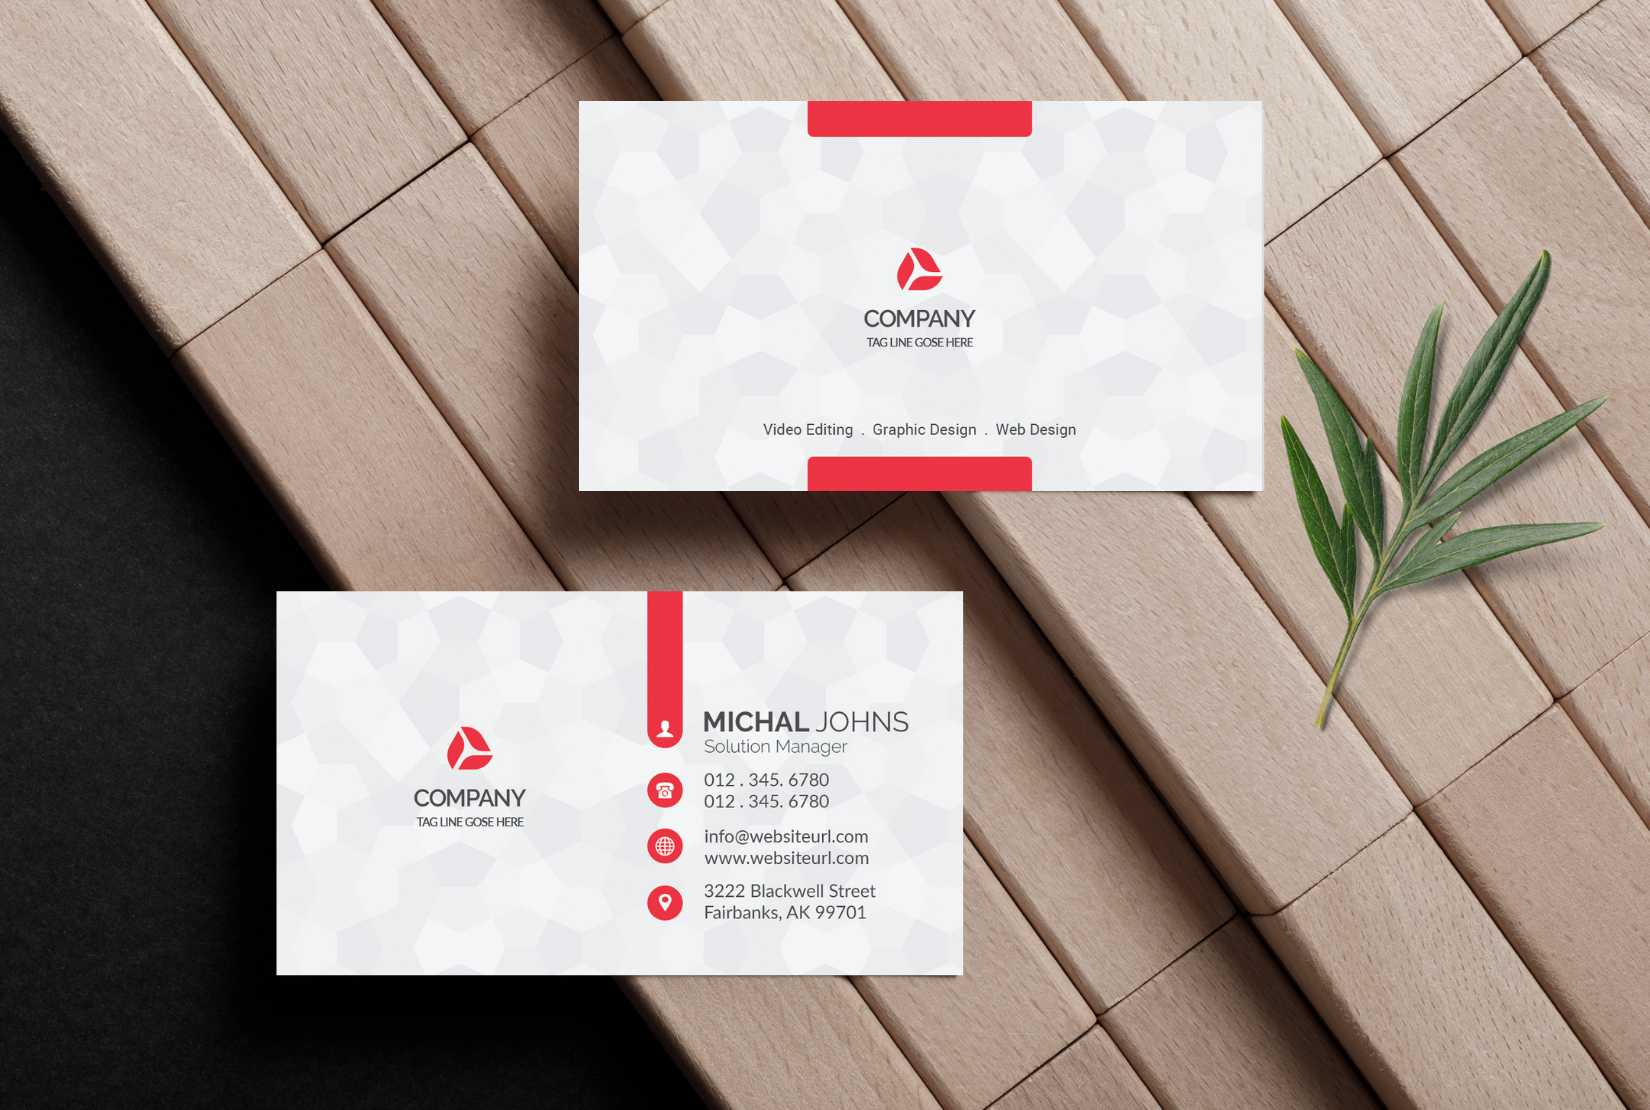 I will design a eye catching business card